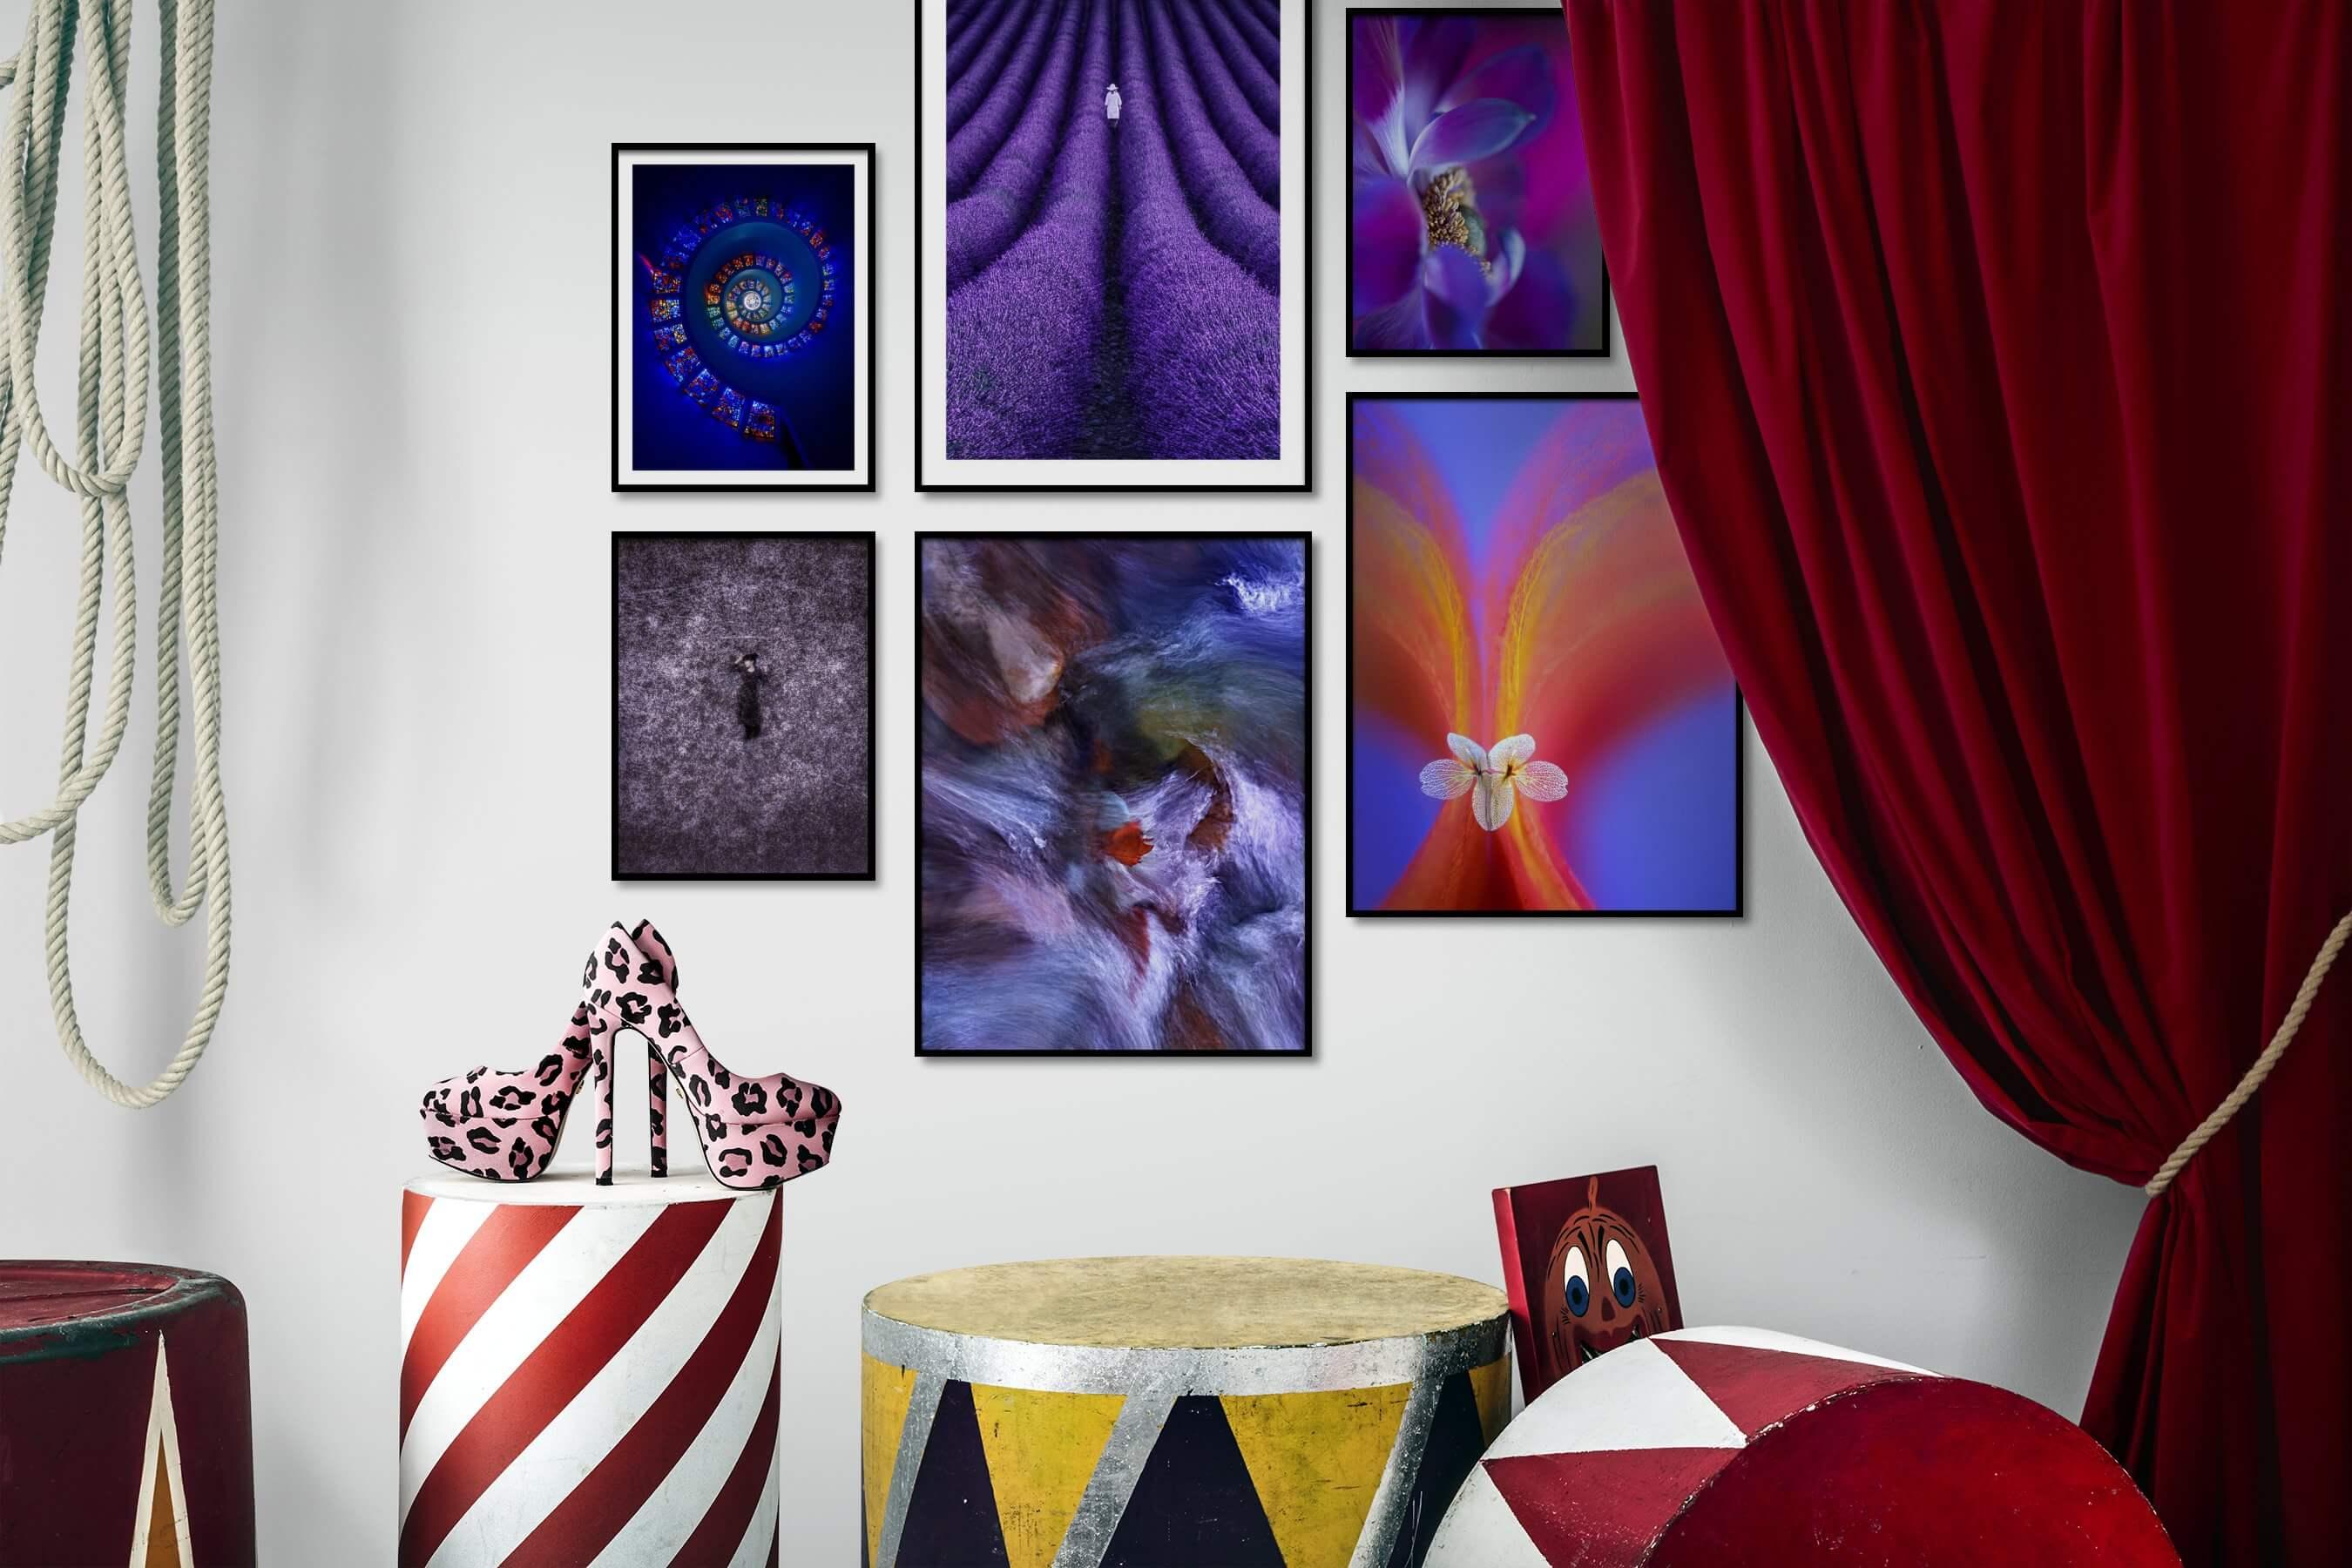 Gallery wall idea with six framed pictures arranged on a wall depicting Colorful, For the Maximalist, For the Moderate, Country Life, Mindfulness, Artsy, For the Minimalist, Nature, and Flowers & Plants